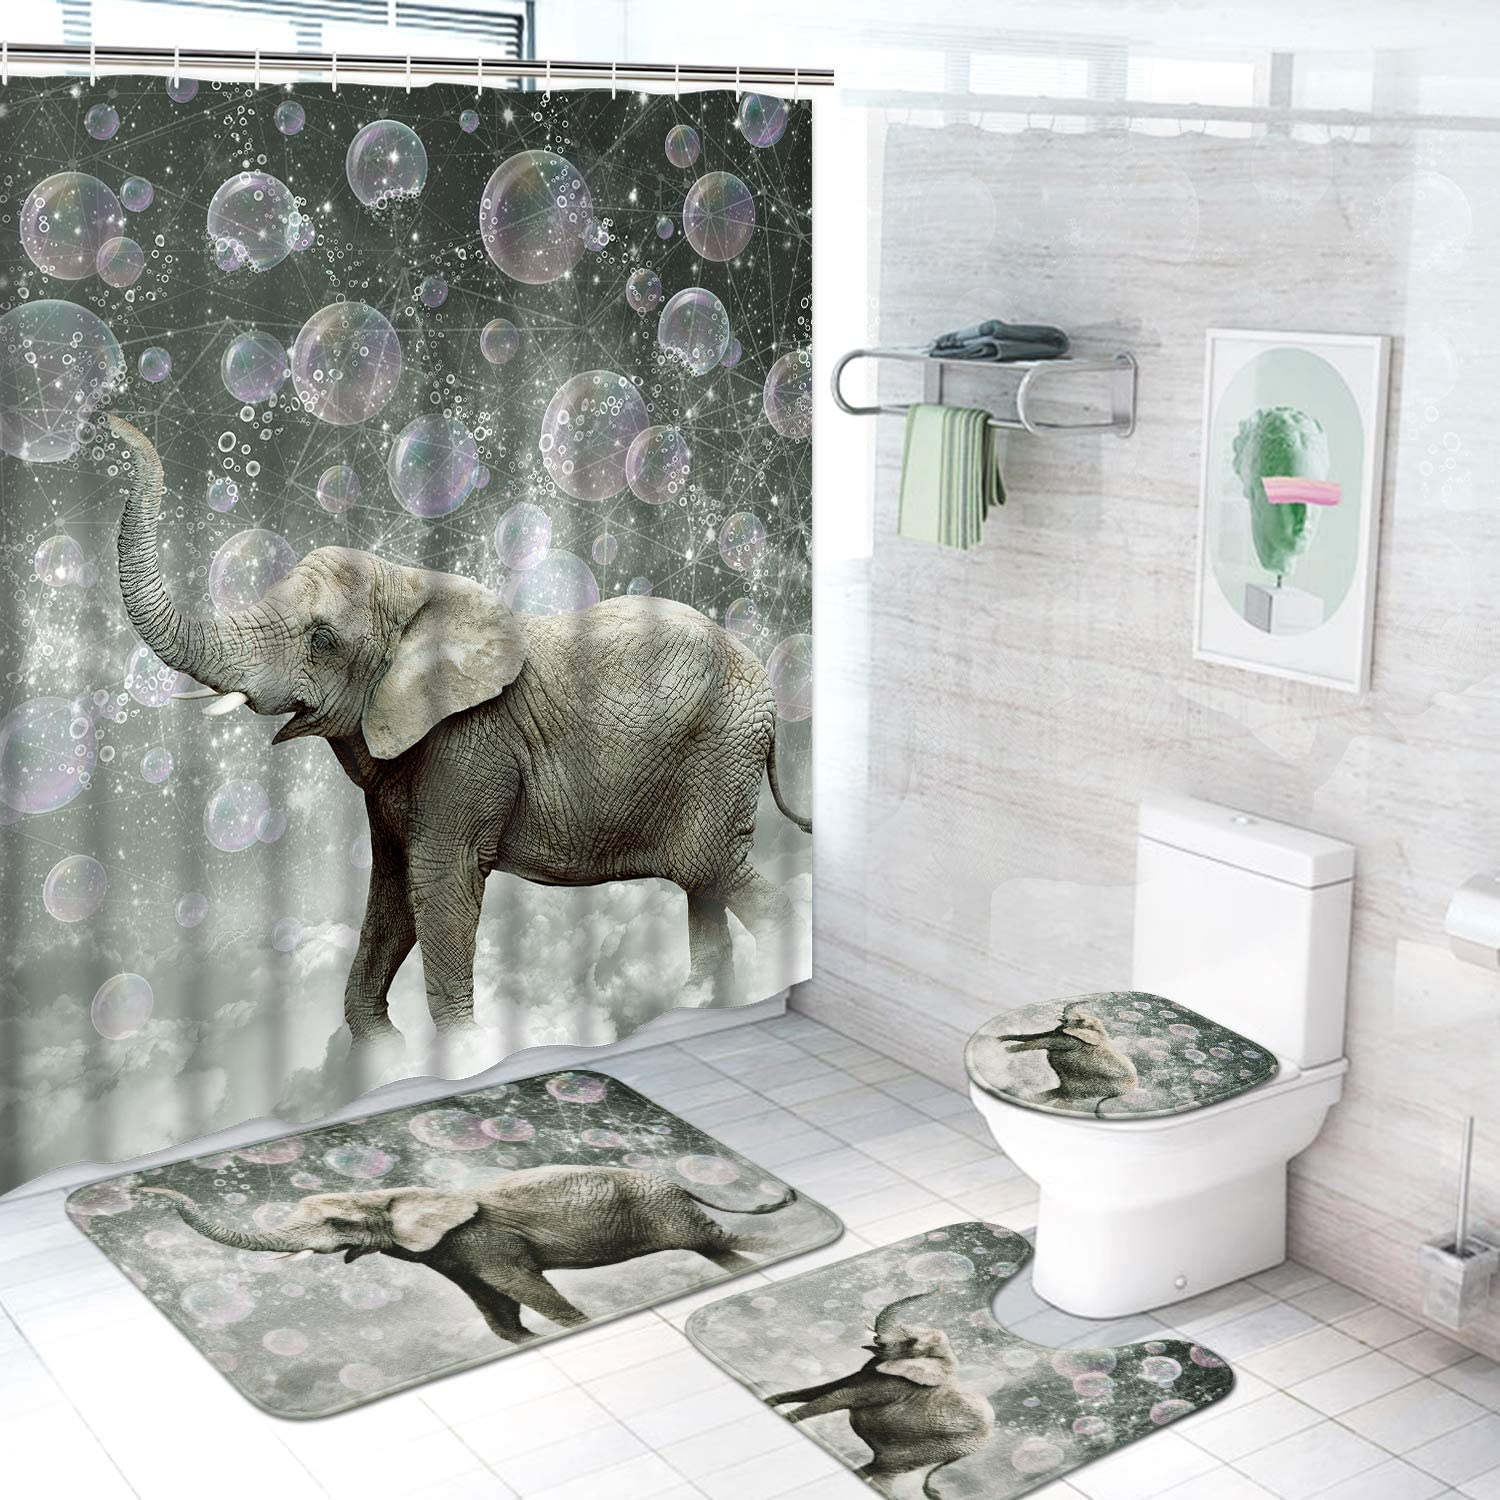 4 Pcs Cute Elephant Shower Curtain Set with Non-Slip Rug, Toilet Lid Cover and Bath Mat, Funny Animal Bathroom Shower Curtains with 12 Hooks, Grey Fabric Shower Curtains for Bathroom